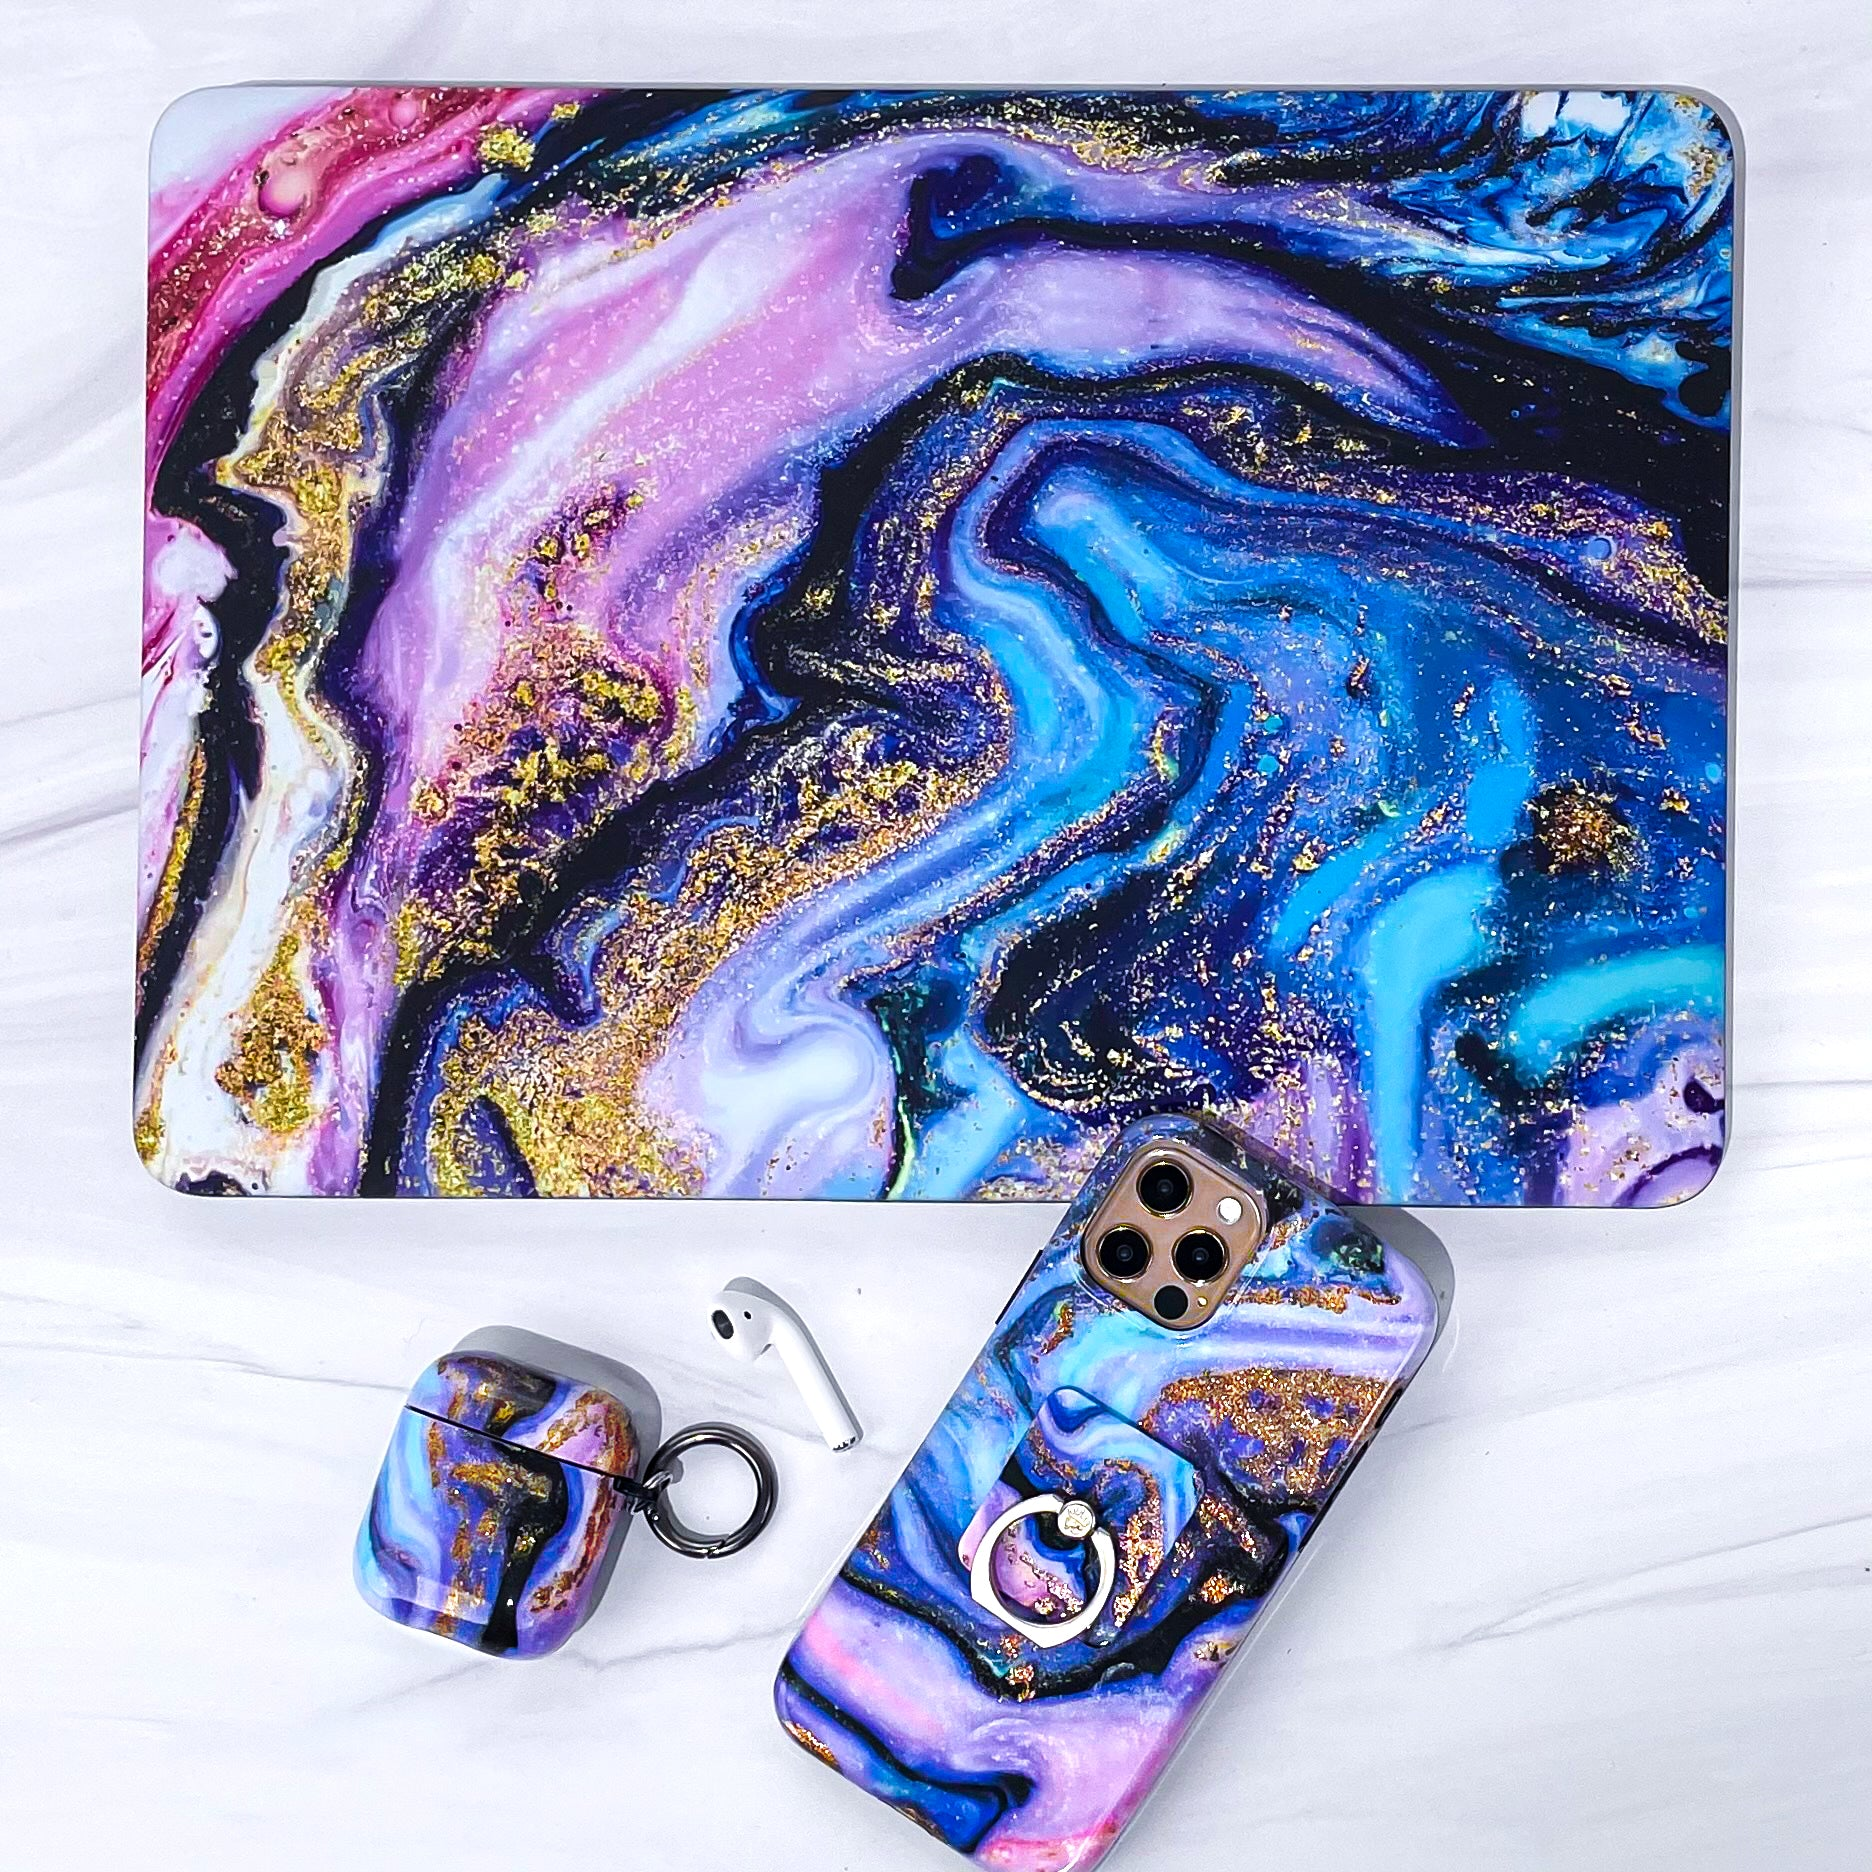 Galaxy Glitter Marble MacBook Case